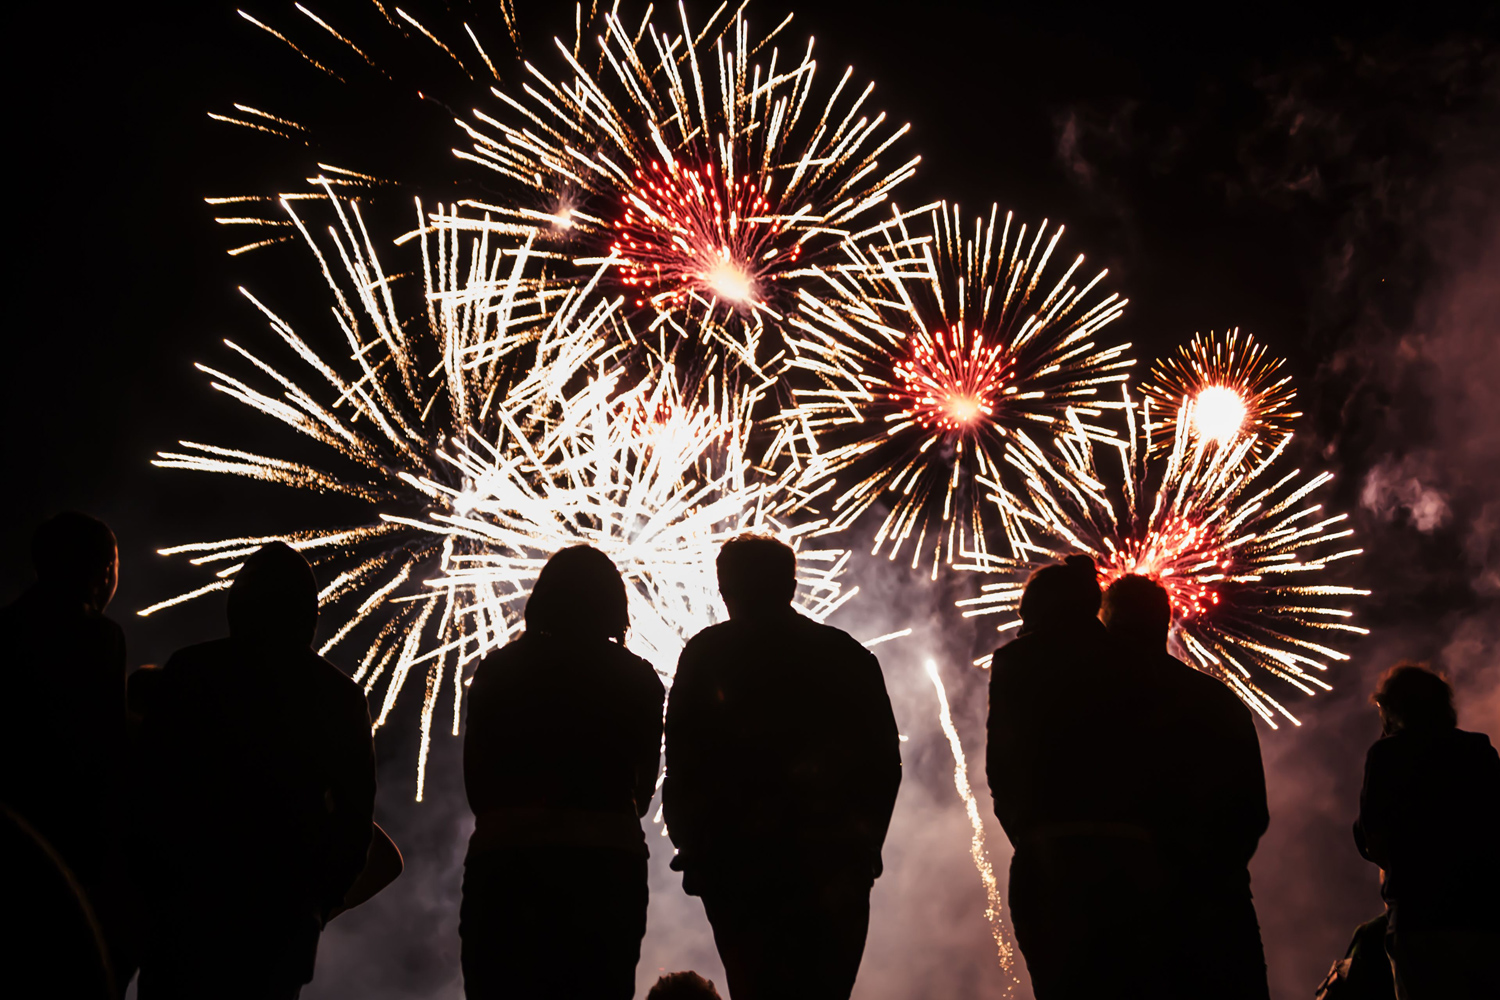 Fireworks Displays in Andover